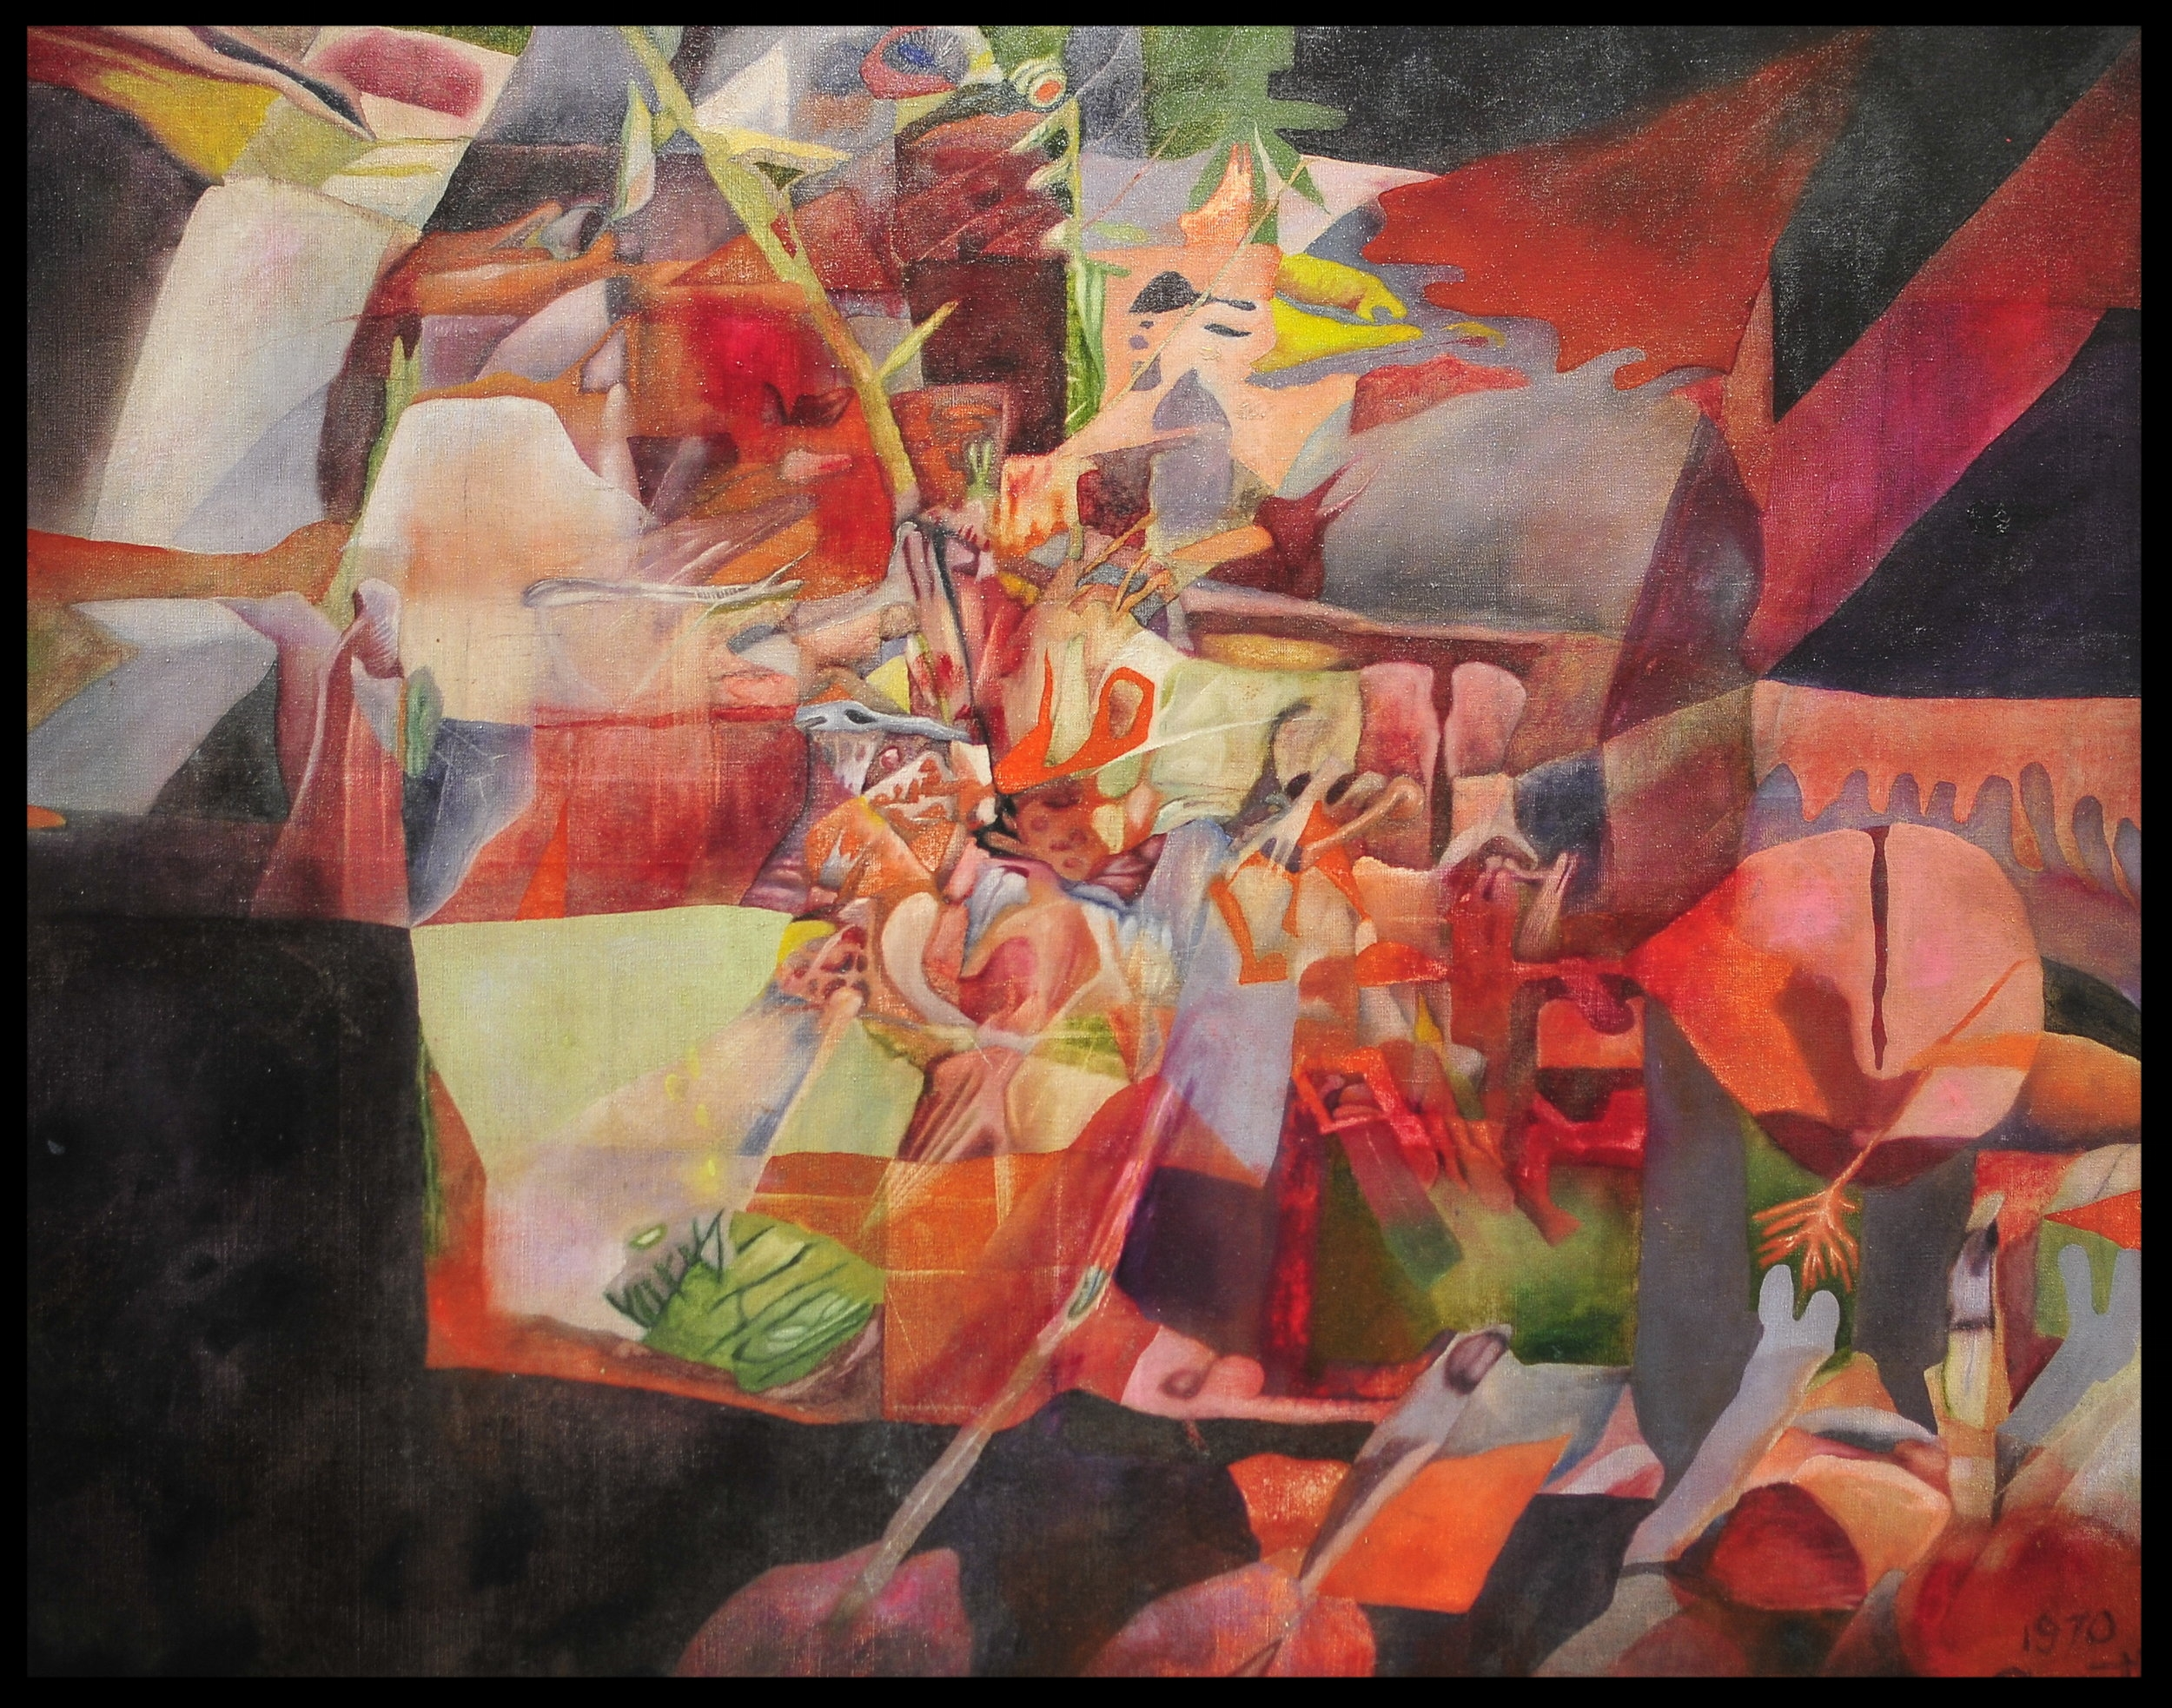 Title: 'Silent Cataclysm' , 1970 Media: Oil on canvas Size: 117 x 94 cm Location: Bruce Sherratt Gallery, Bali